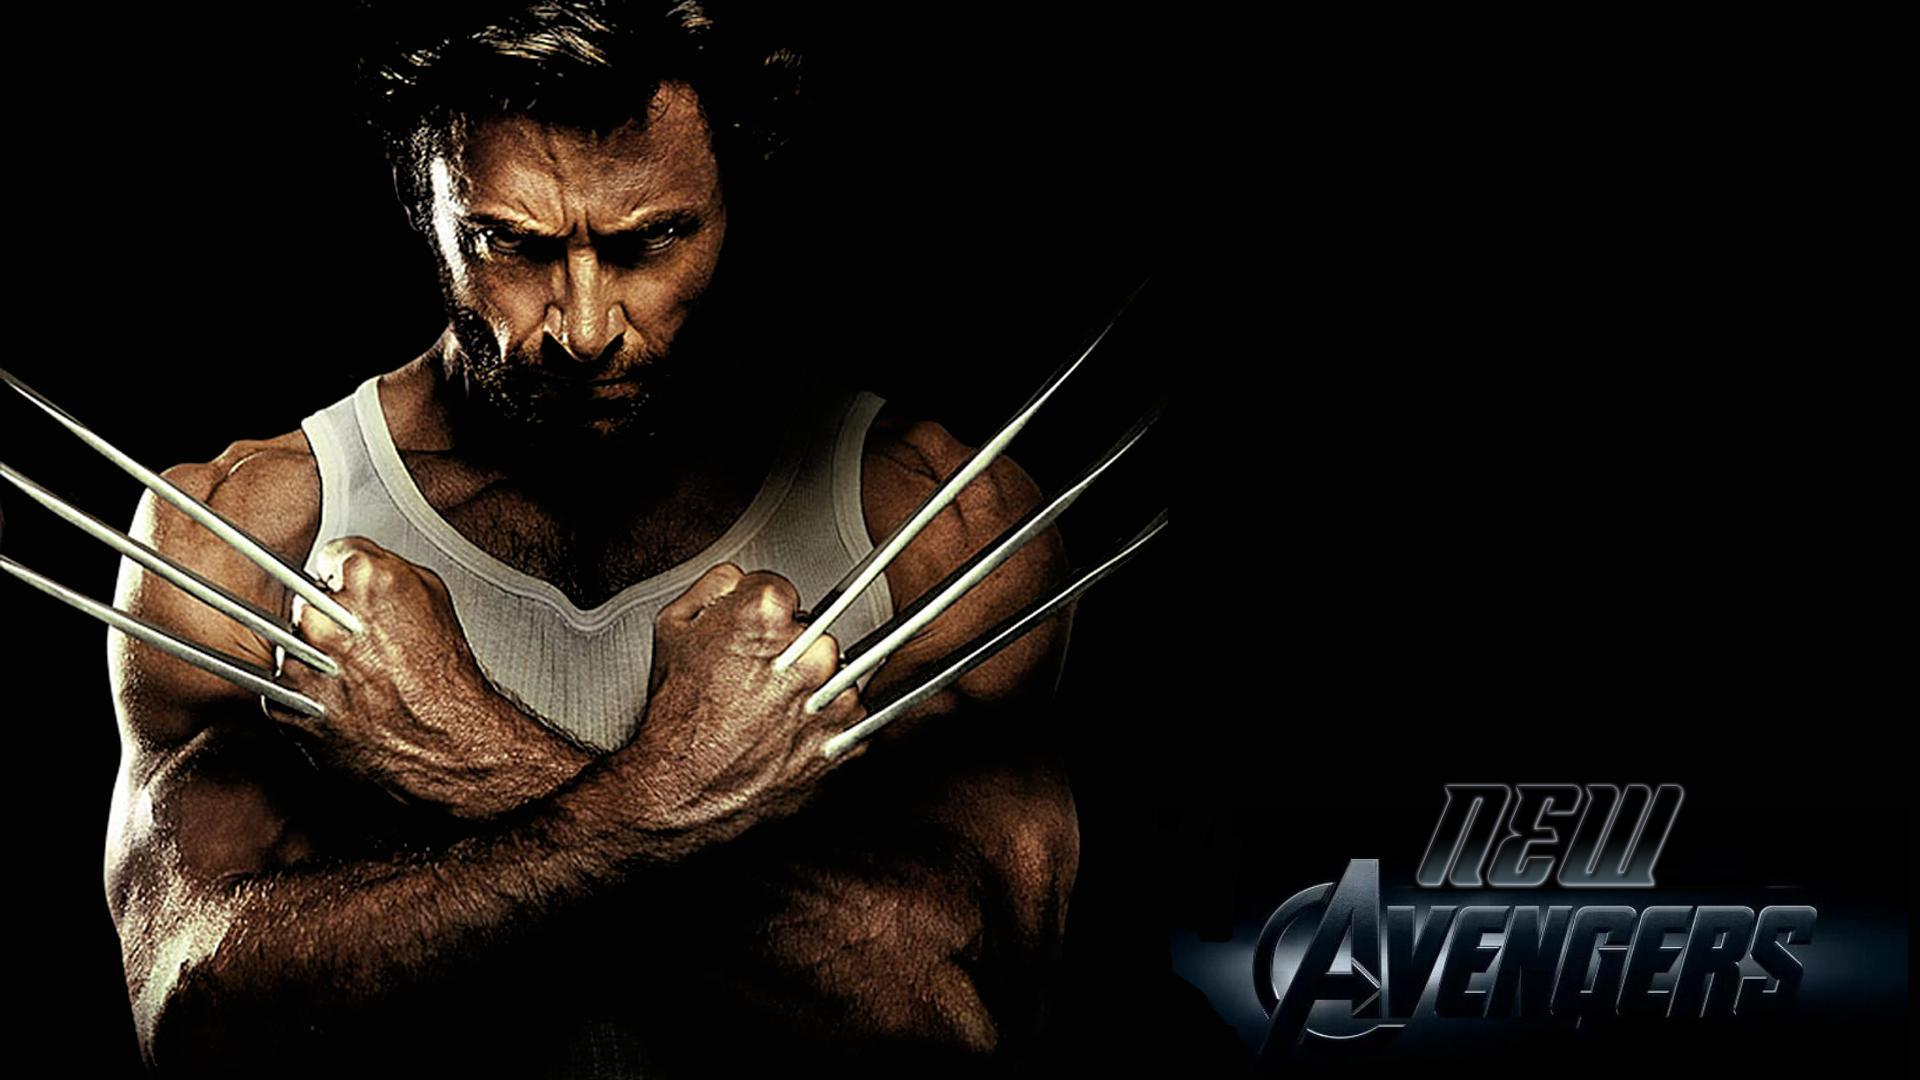 wolverine hd wallpapers - photo #6